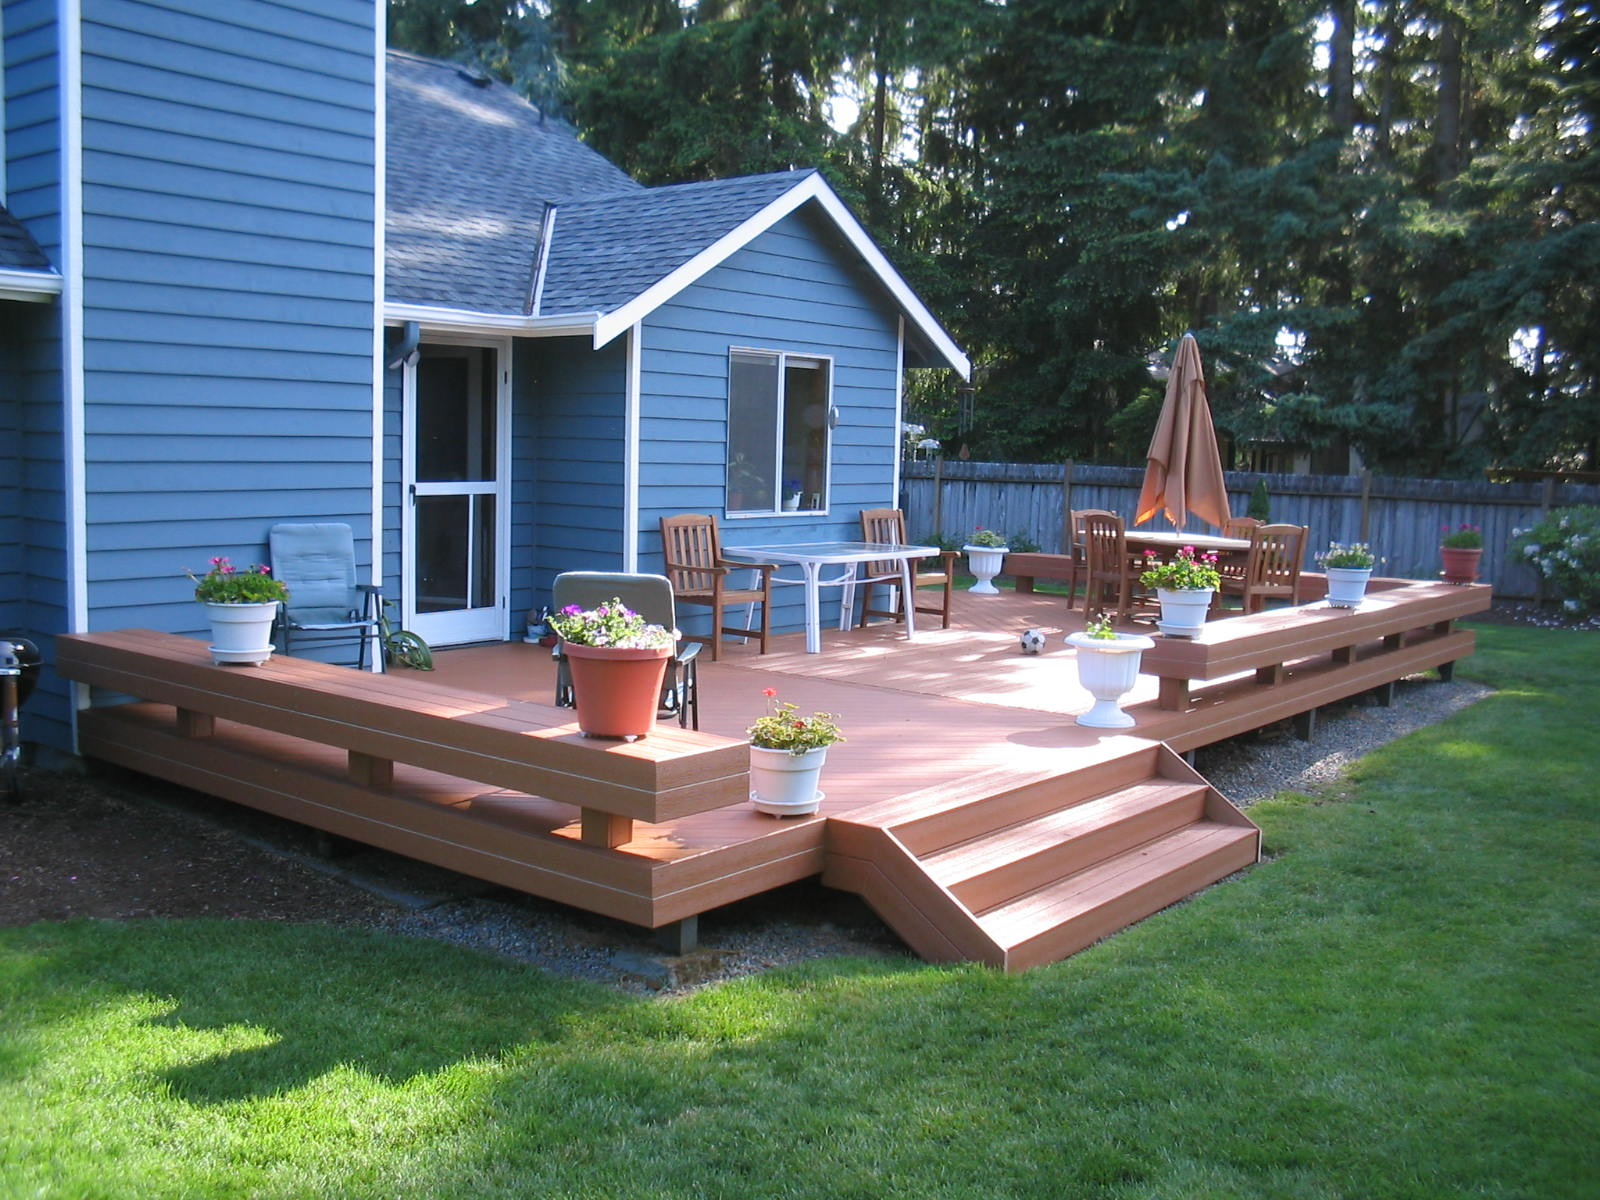 Small deck design ideas st louis decks screened - Decorating a small deck ideas ...